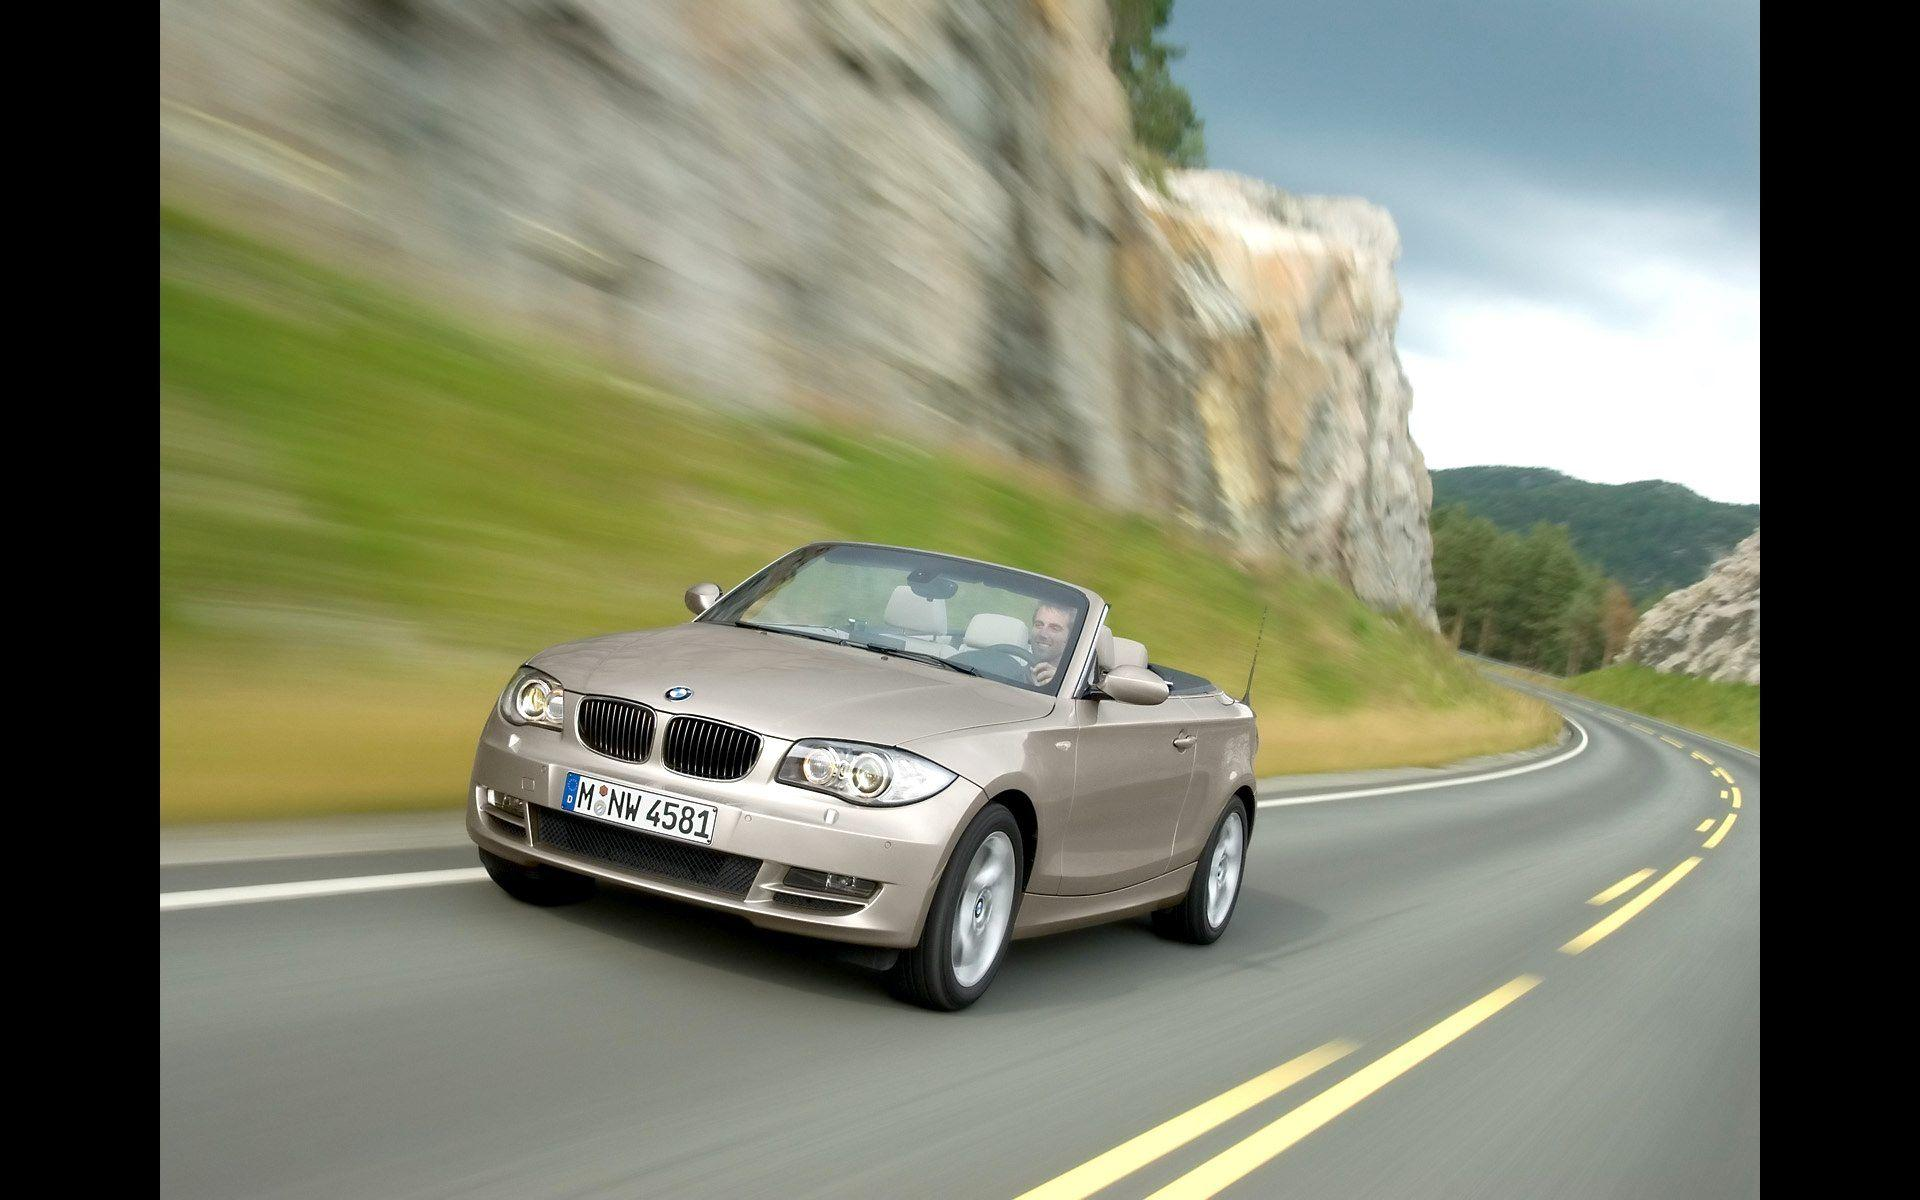 2008 BMW 1 Series Convertible Wallpaper 14 - 1920x1200